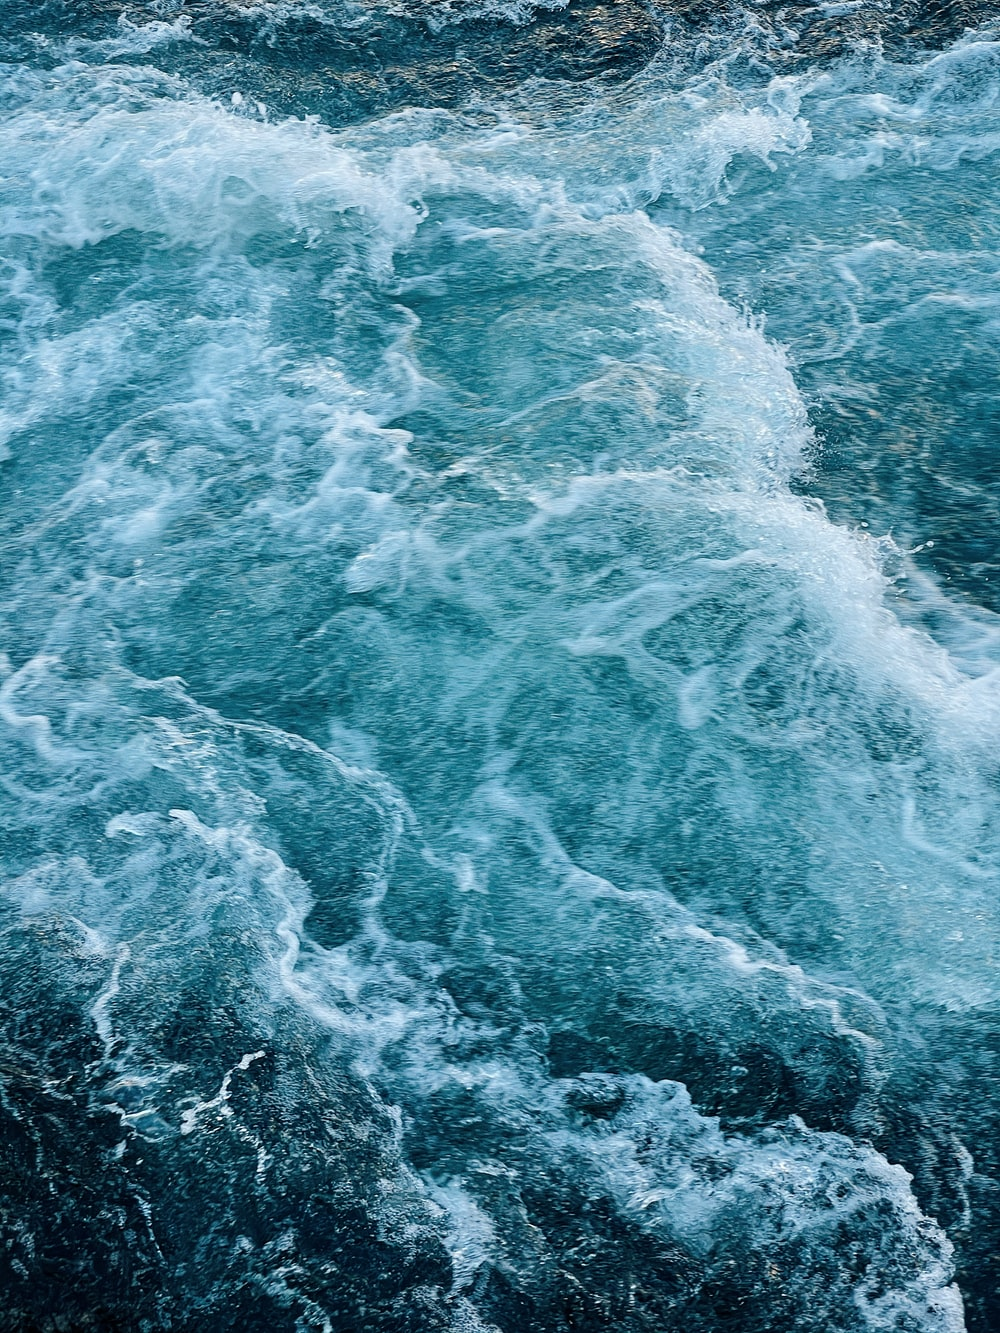 water waves on blue body of water